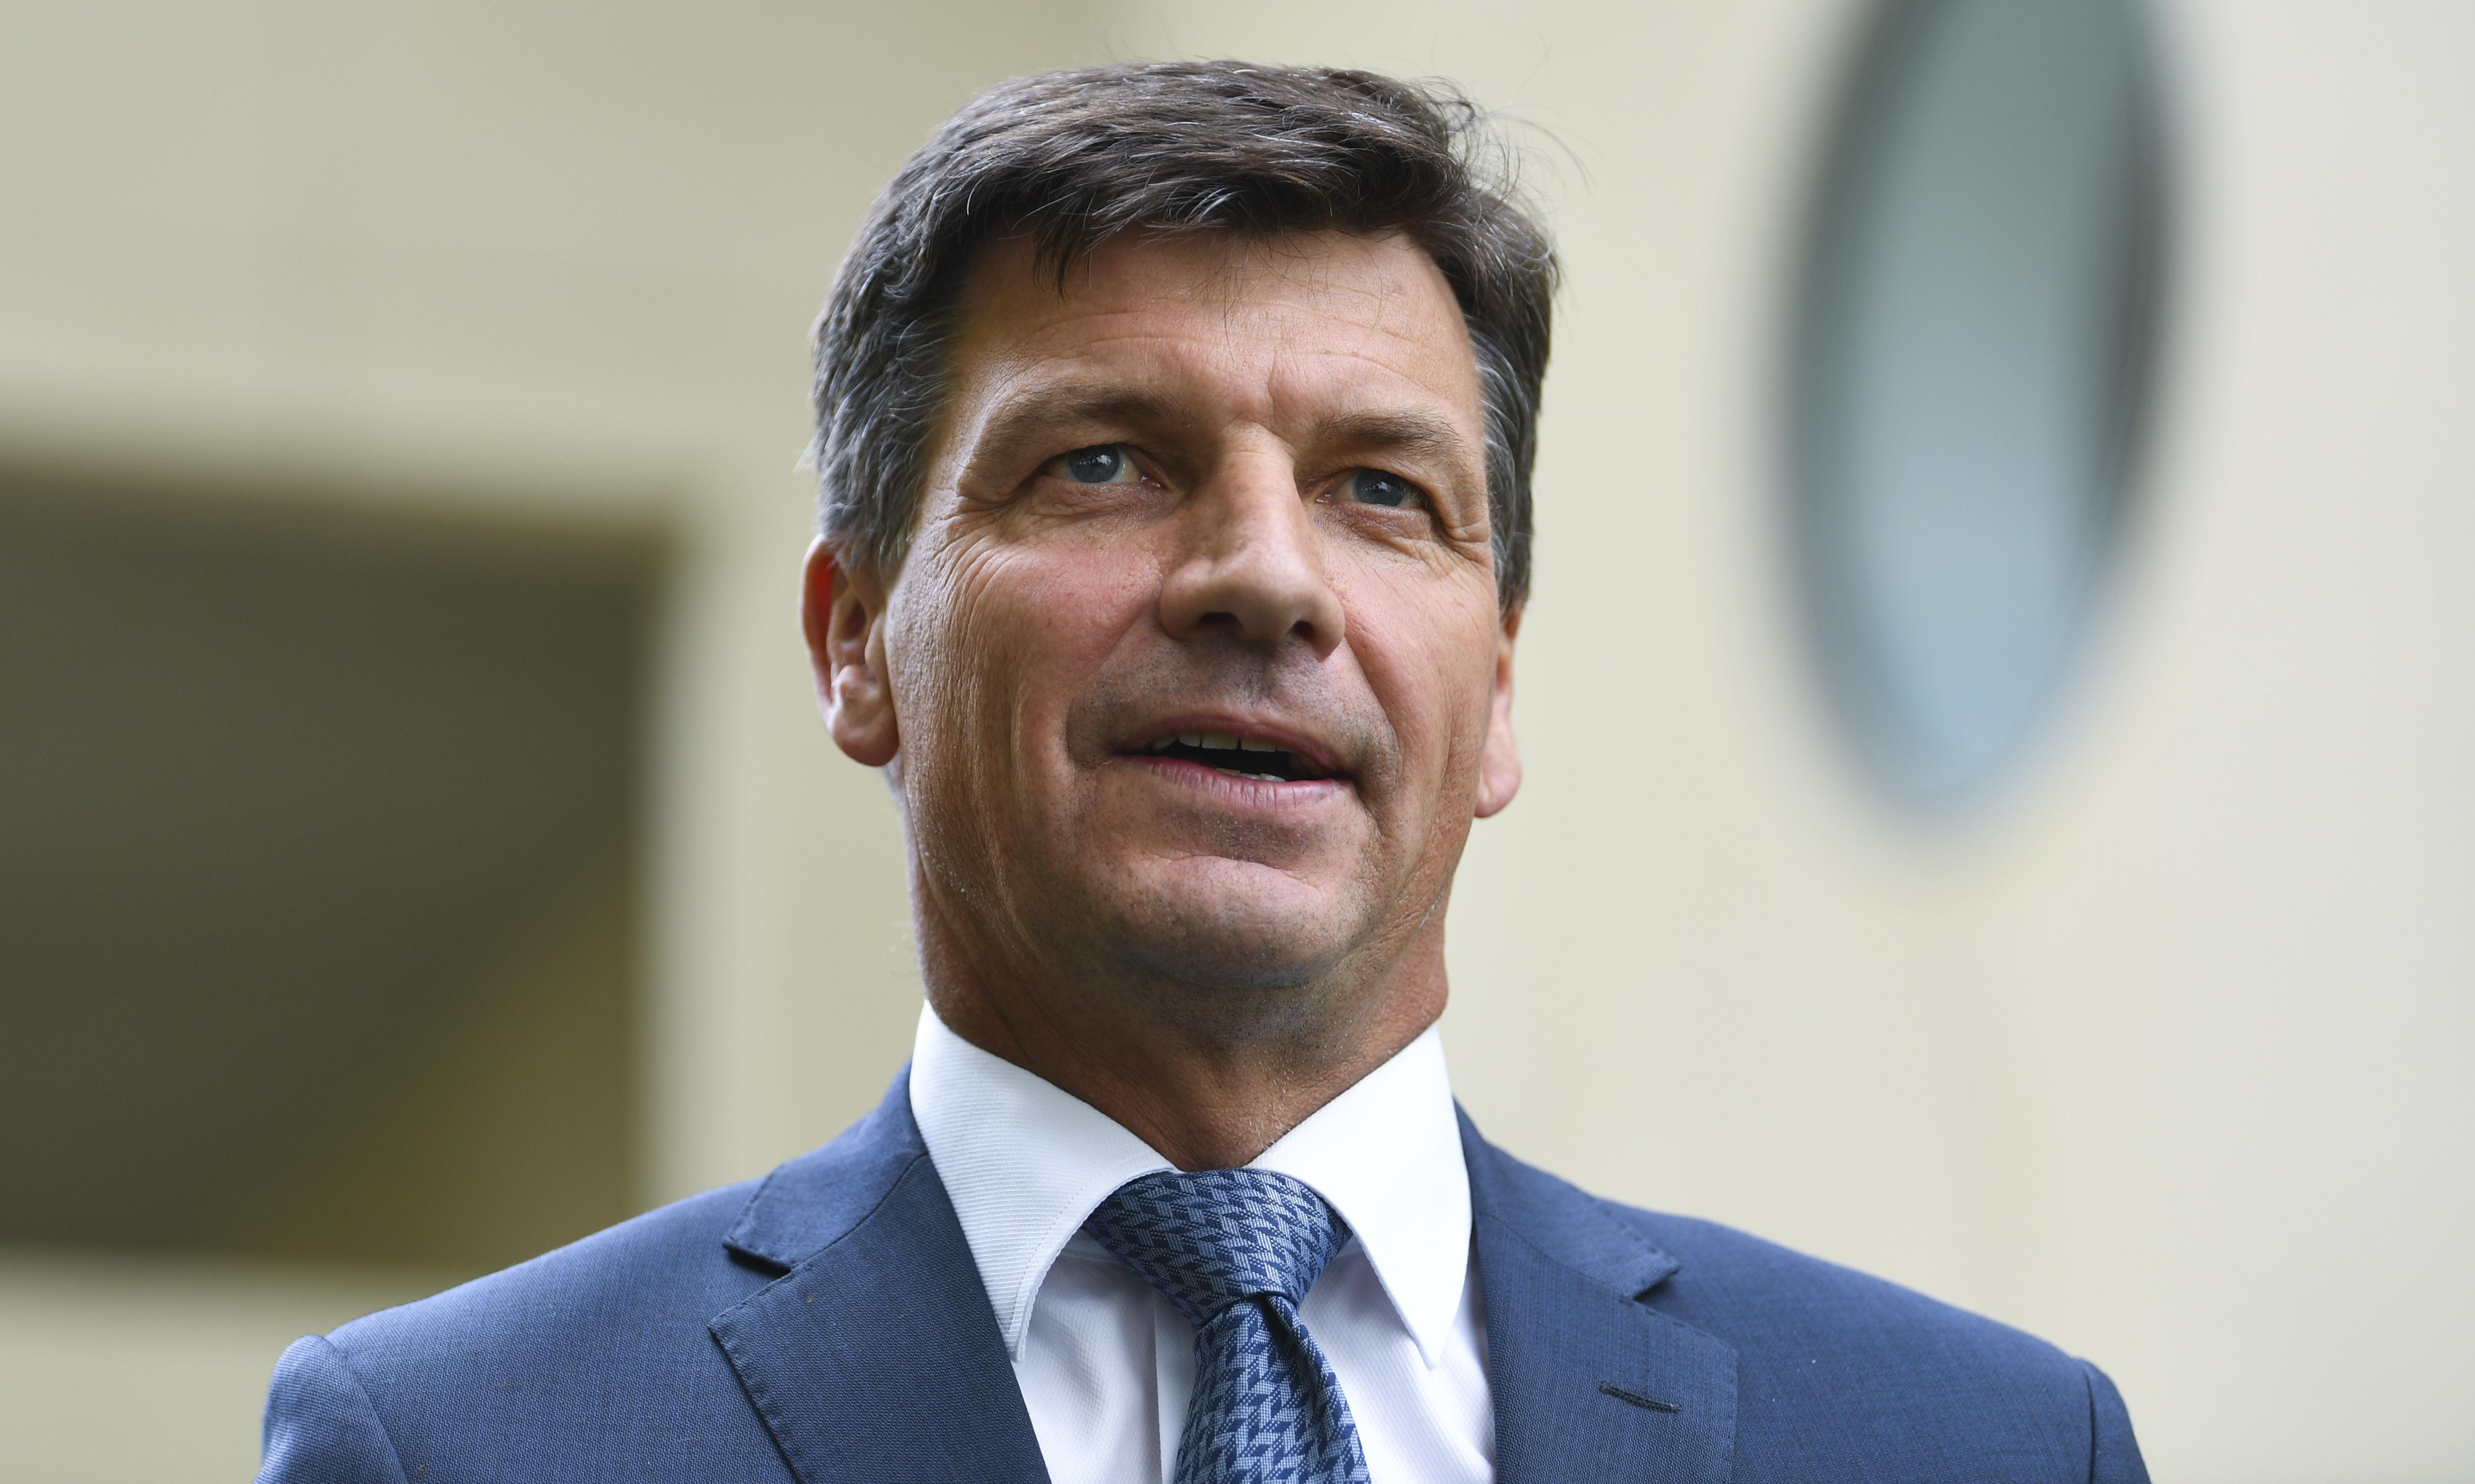 Angus Taylor won't say what PM's 'negative globalism' comments mean for climate talks